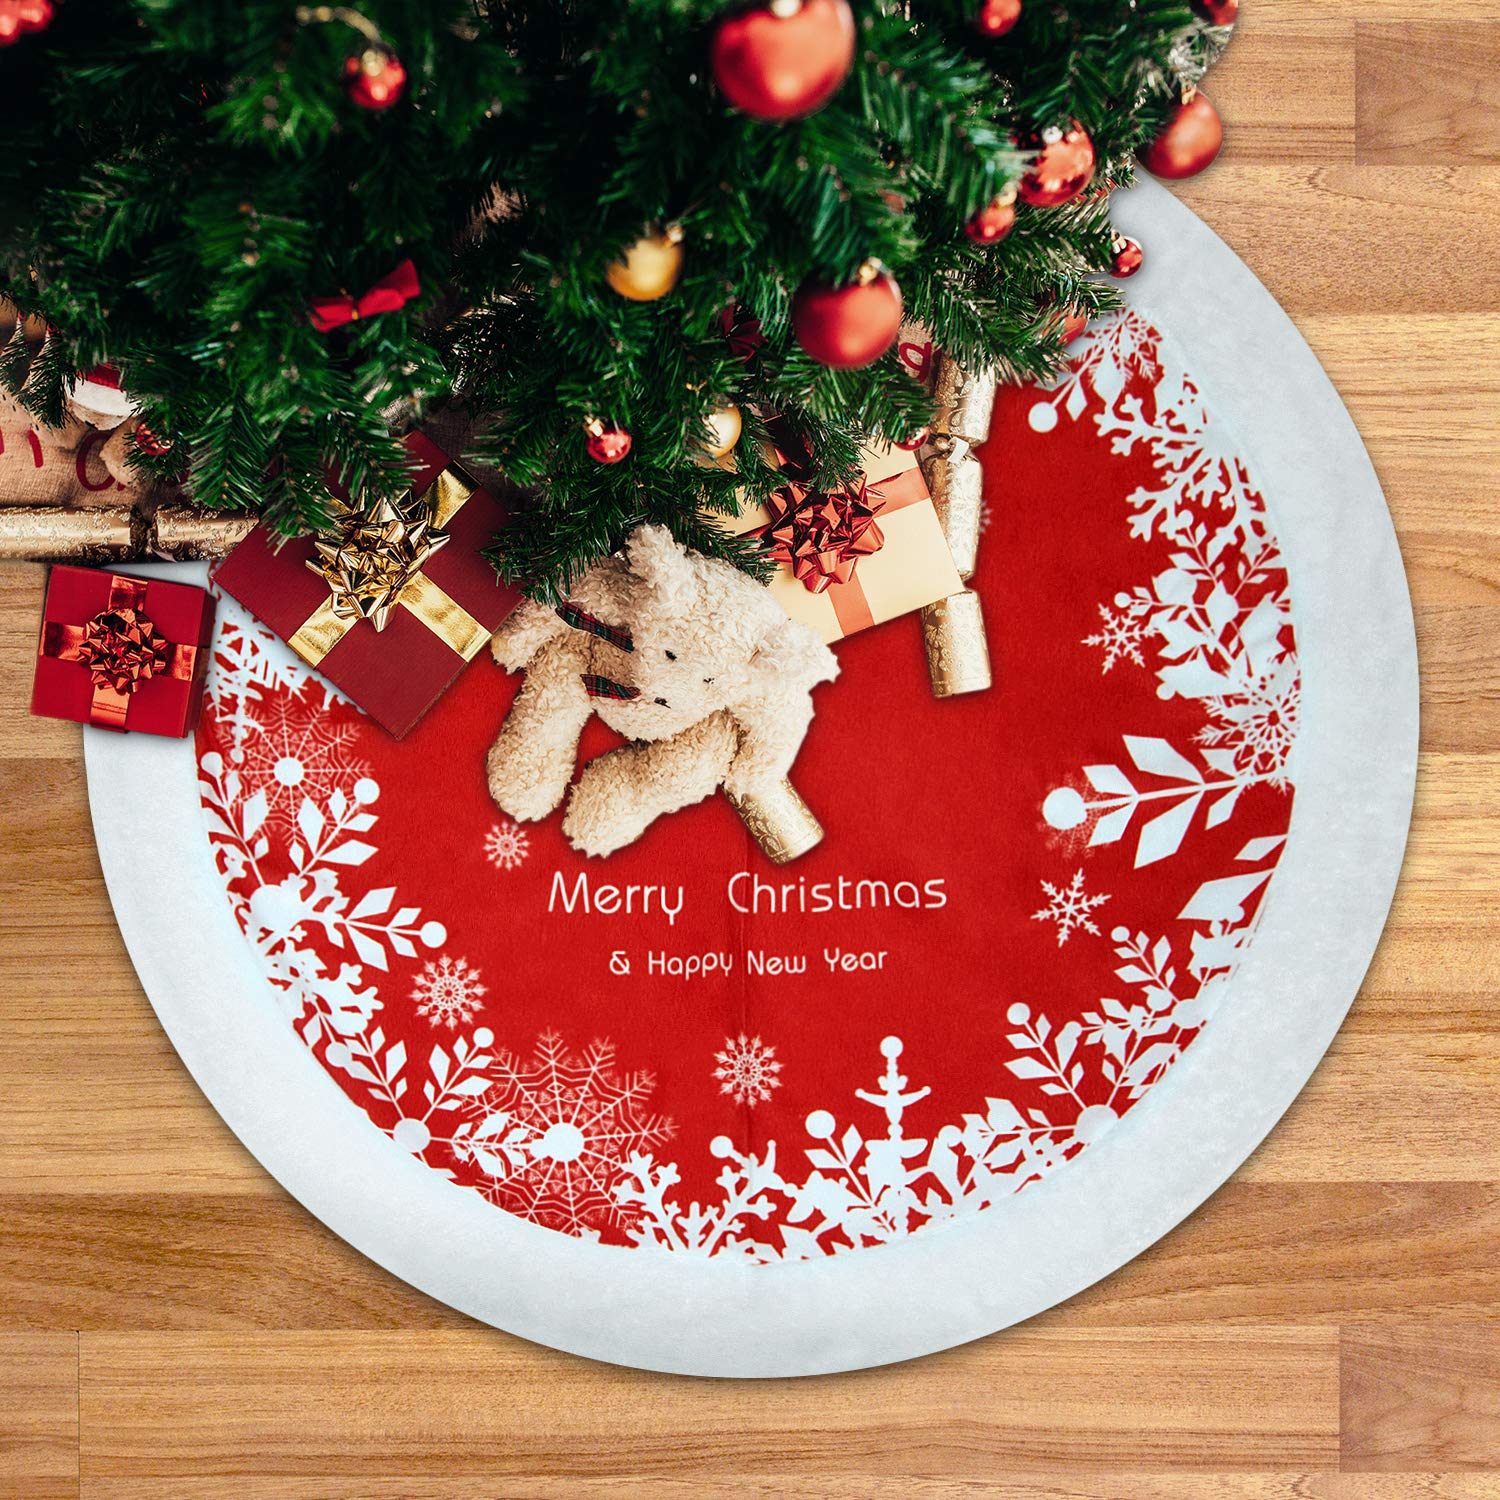 Peroptimist 48 Inches Red Plush Christmas Tree Skirt Red and White Tree Skirt Mat Ornament with Printed Snowflakes Xmas Blessing Word for Christmas